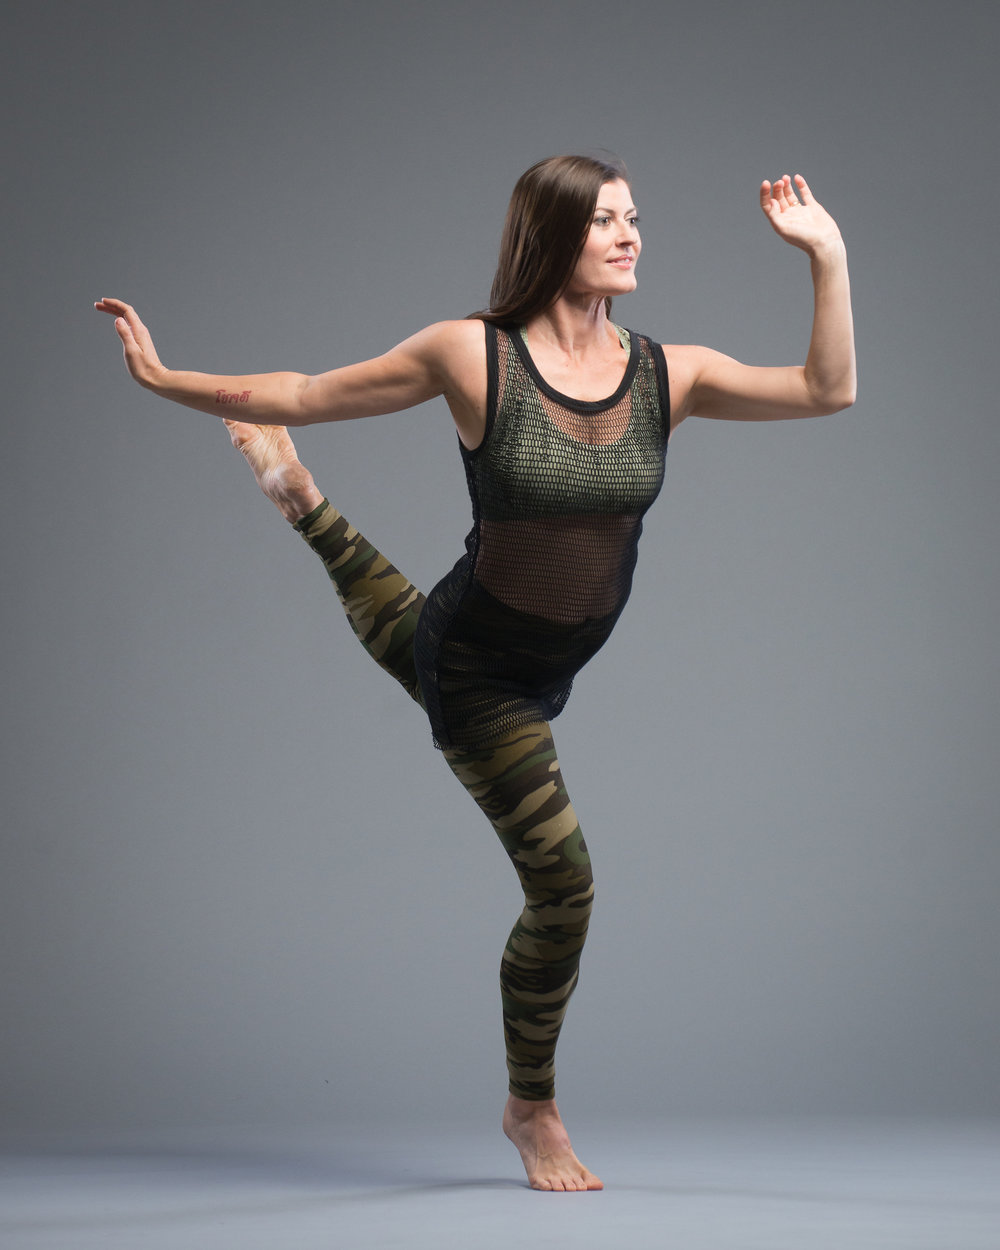 """Laura Rutledge - Laura is a professional ballet and modern dancer and a classically certified Pilates instructor. She began her Pilates training in 2000 while dancing with the State Street Ballet in Santa Barbara, CA and she continued to incorporate the method into her daily training regimen. In 2010, she moved to New York City to dance with the Lar Lubovitch Dance Company. When she retired from her performance career, she completed her 650-hour Comprehensive Pilates certification through Power Pilates.She taught for a wide variety of institutions while living in NYC, including dance intensives at the Joffrey Ballet School and Lar Lubovitch Dance. Laura has recently added the role of mother to her resume and in addition to Pilates, also teaches """"Mini & Me"""", a fitness class for parents and their babies.Laura strives to help her students push themselves past their perceived limits with encouragement and humor. At the same time, she respects that everyone has different strengths and weaknesses, so she tailors classes with various modification options in order to meet everyone's individual needs. Above all, she asks each person to listen to their body and trust their instincts. """"My goal is to provide a fun and safe class environment while building strength, flexibility, and stamina."""""""